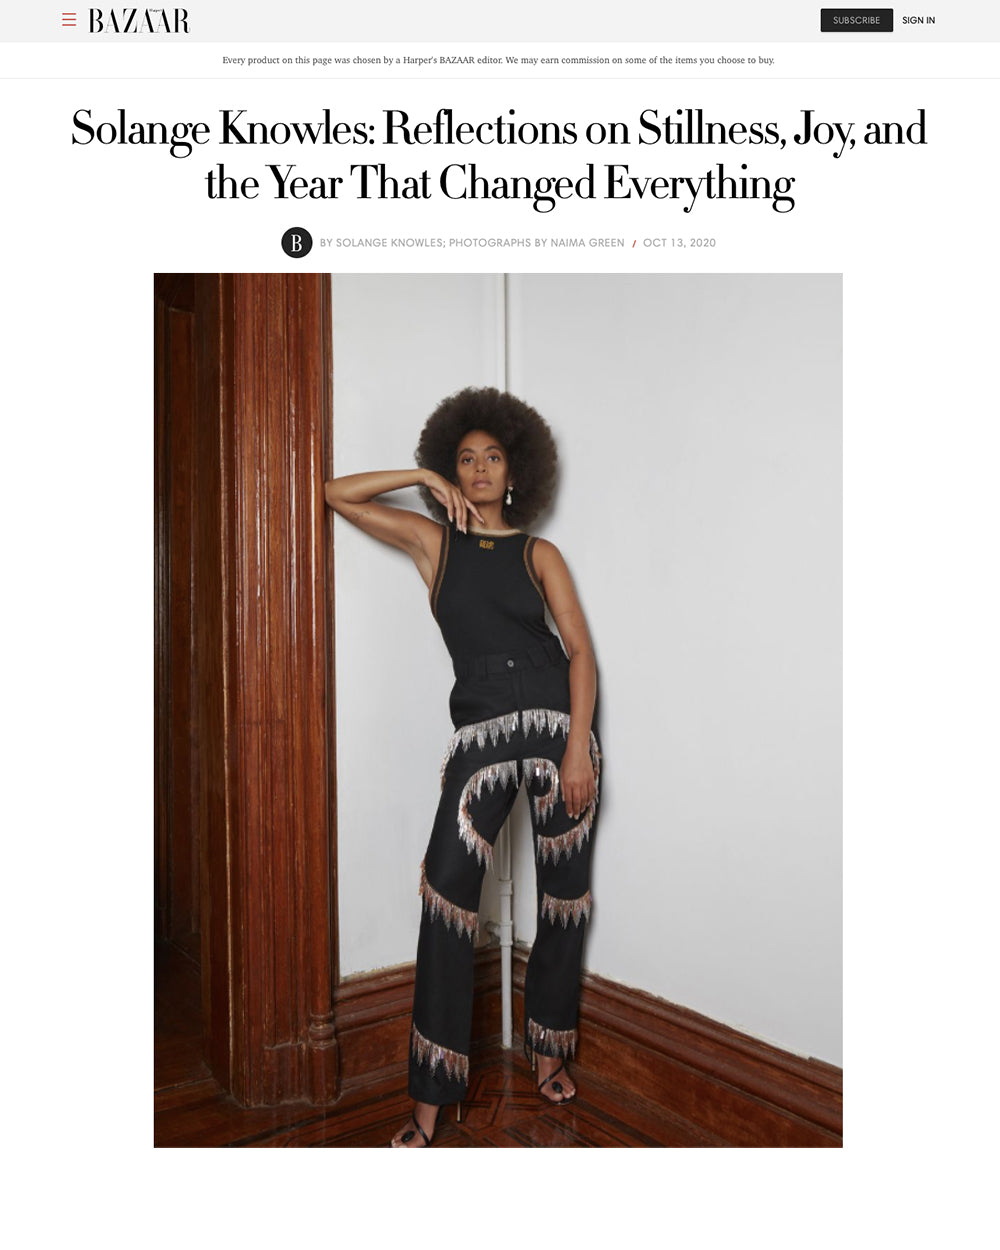 HARPERS BAZAAR - Solange Knowles: Reflections on Stillness, Joy, and the Year That Changed Everything